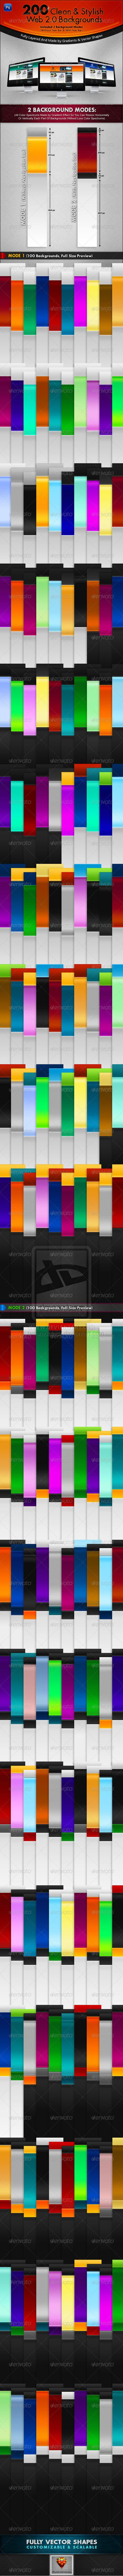 200 Clean and Stylish Web 2.0 Backgrounds by ~behzadblack on deviantART